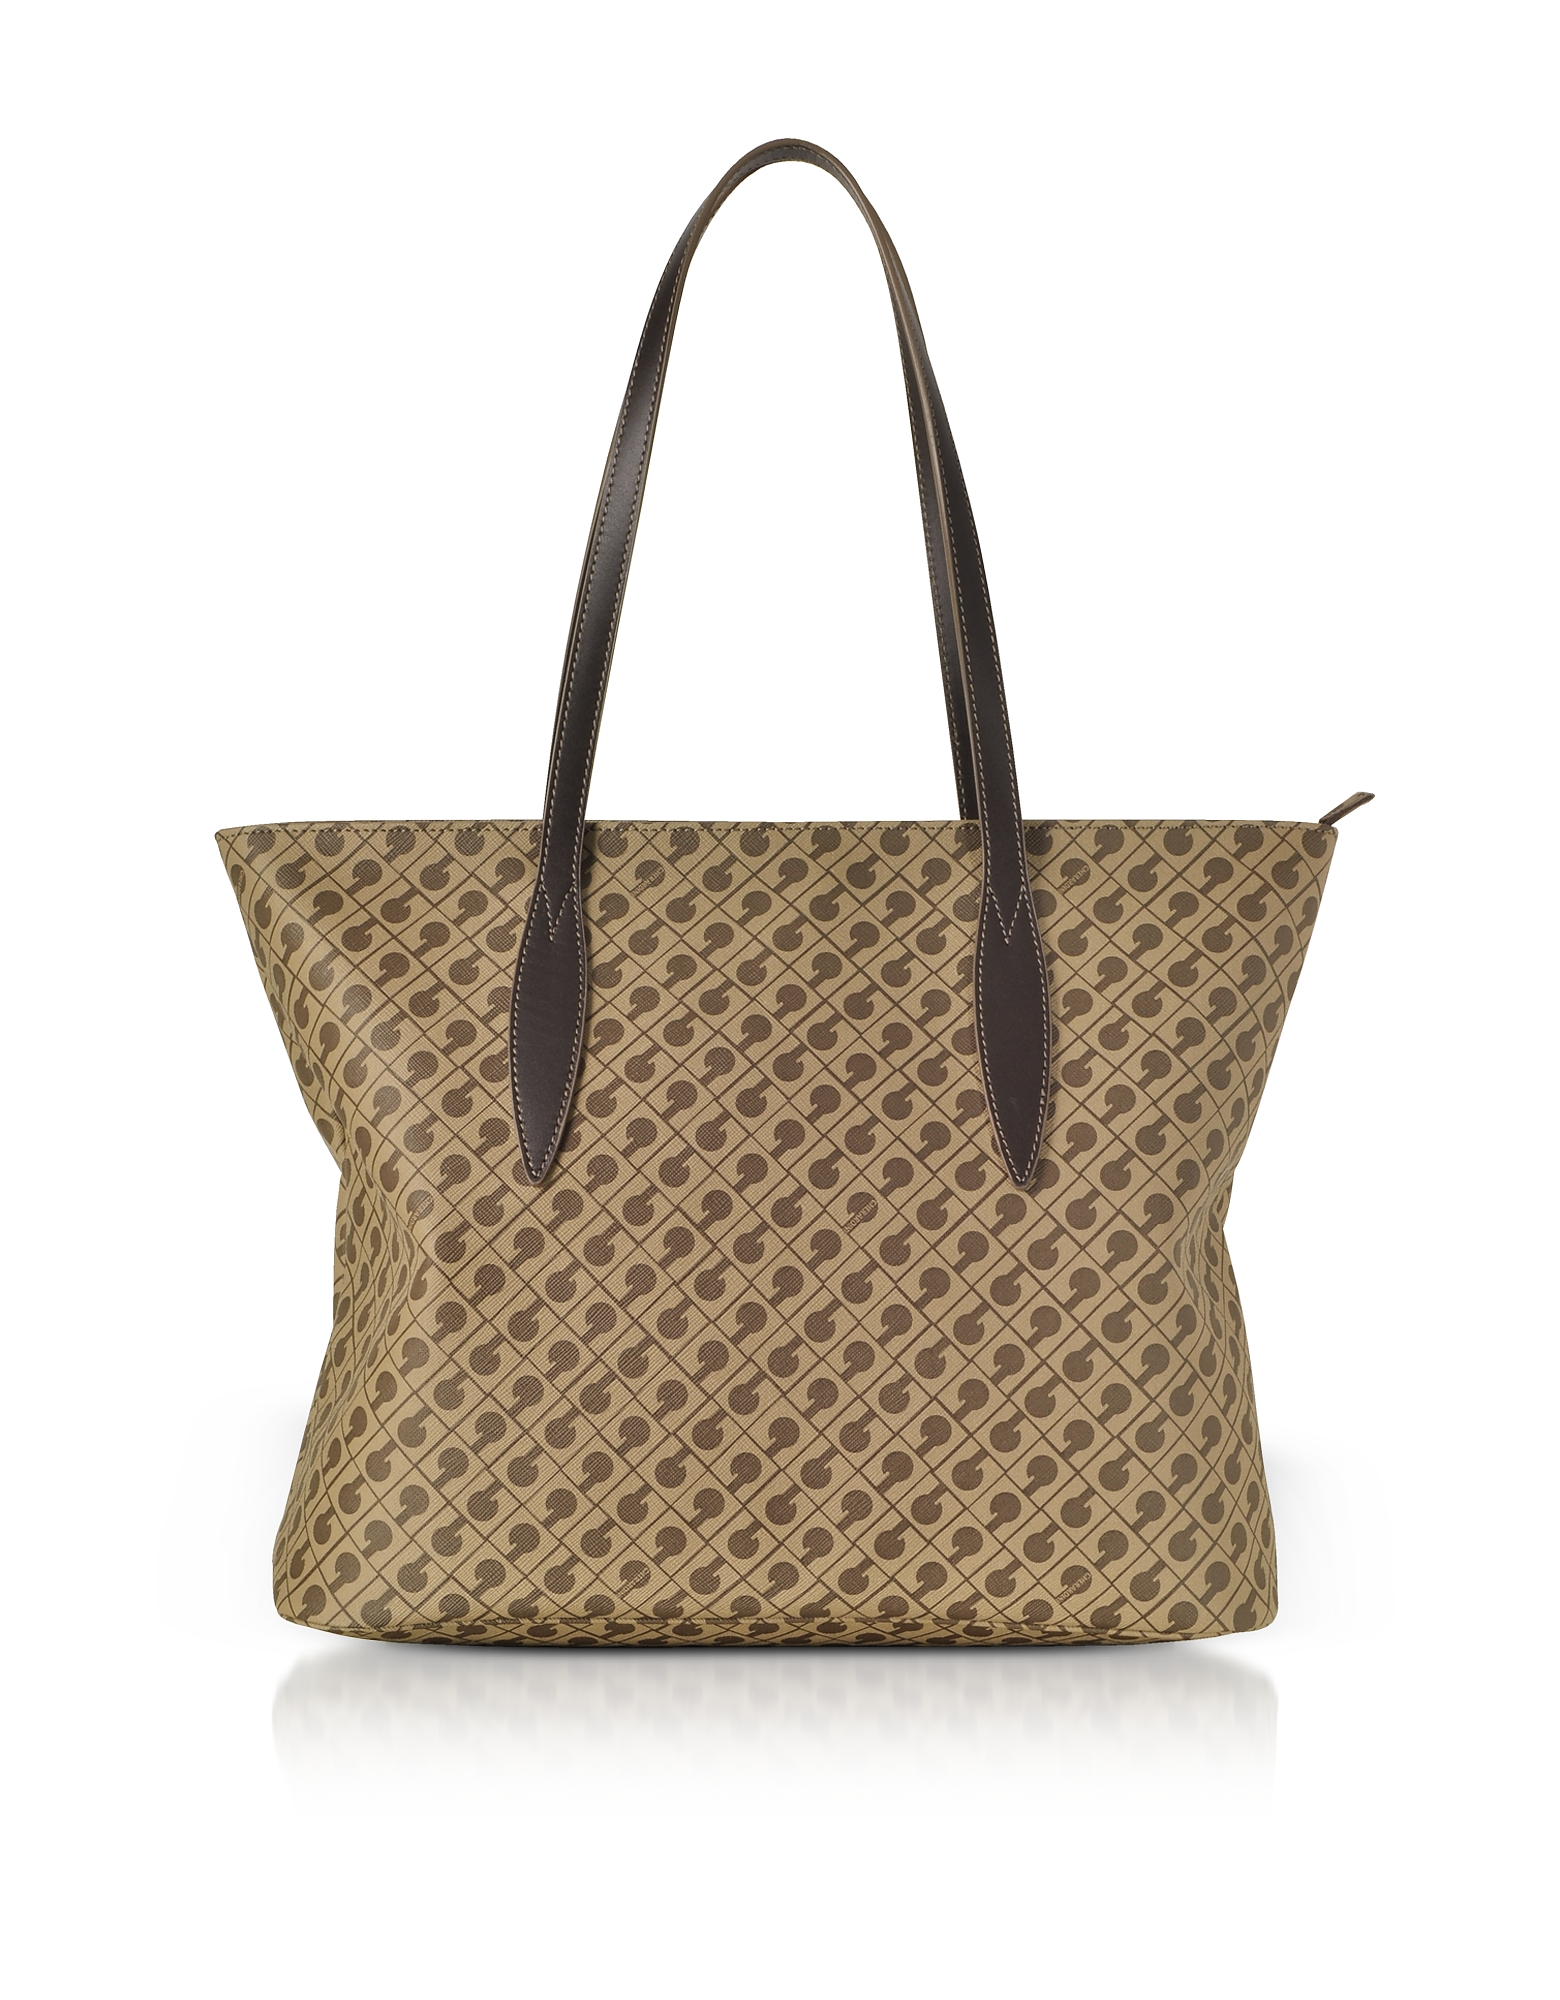 Image of Gherardini Designer Handbags, Millerighe Signature Tote Bag